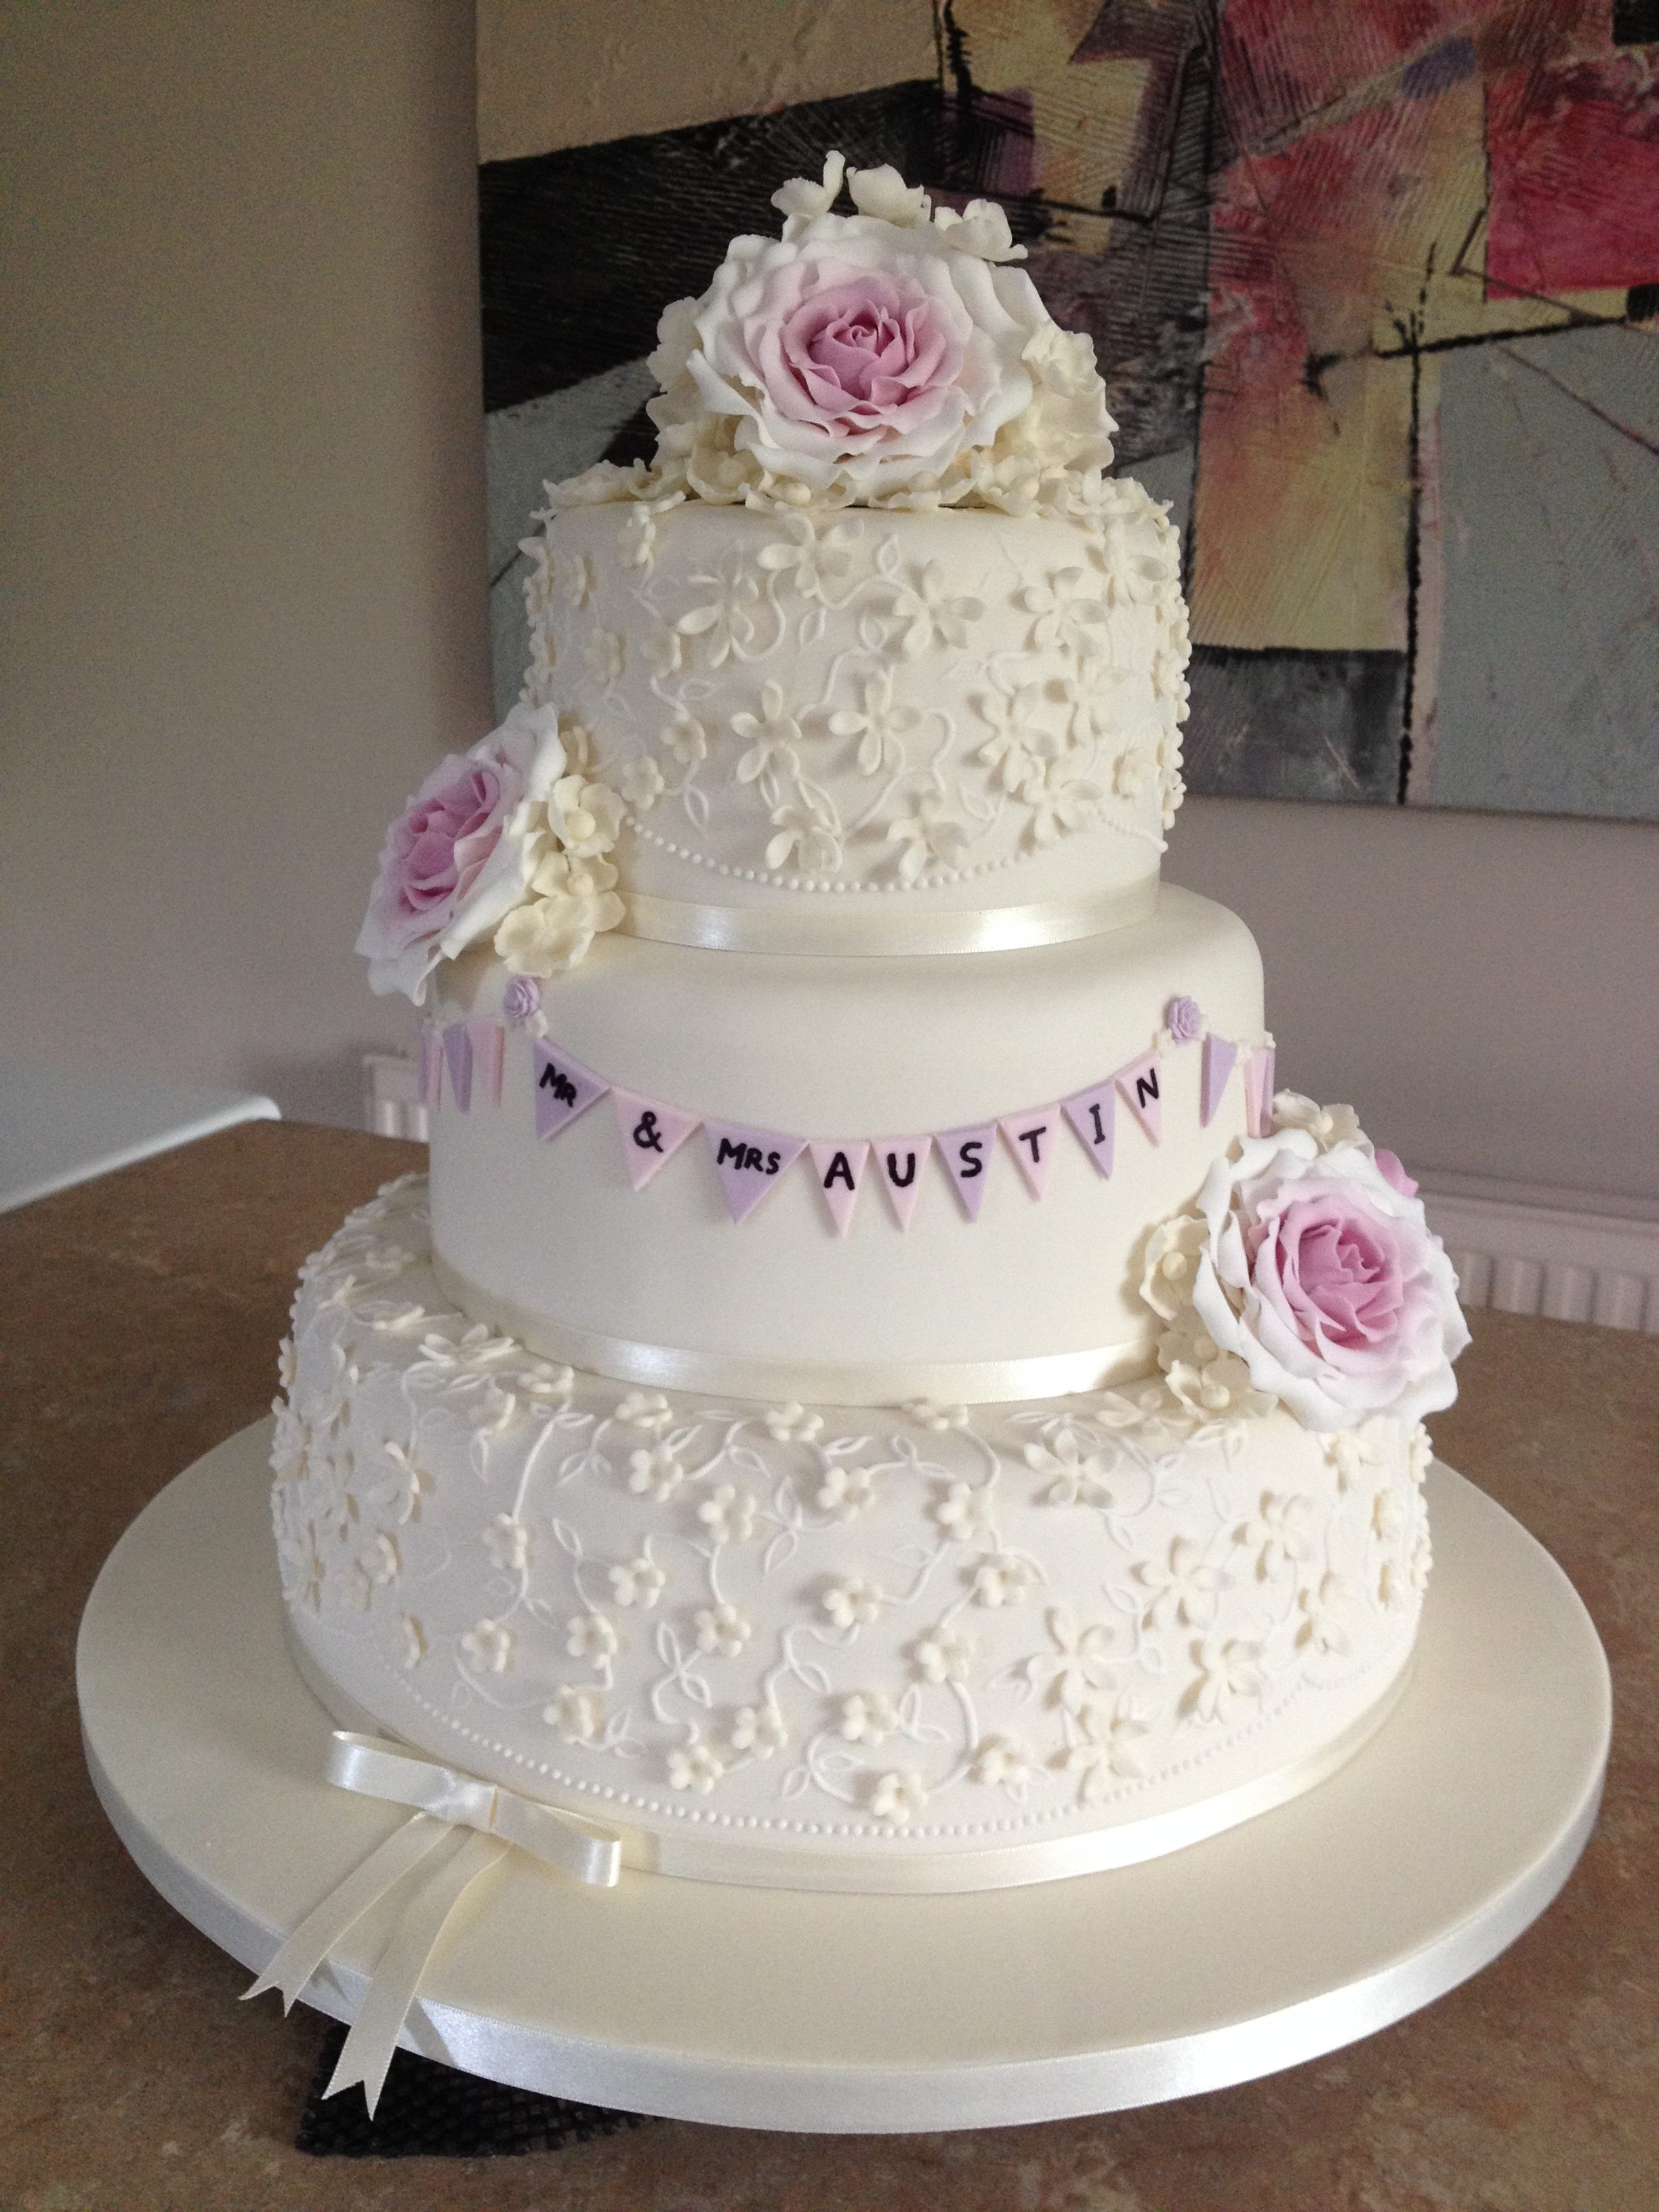 Blossoms, Roses & Bunting Wedding Cake